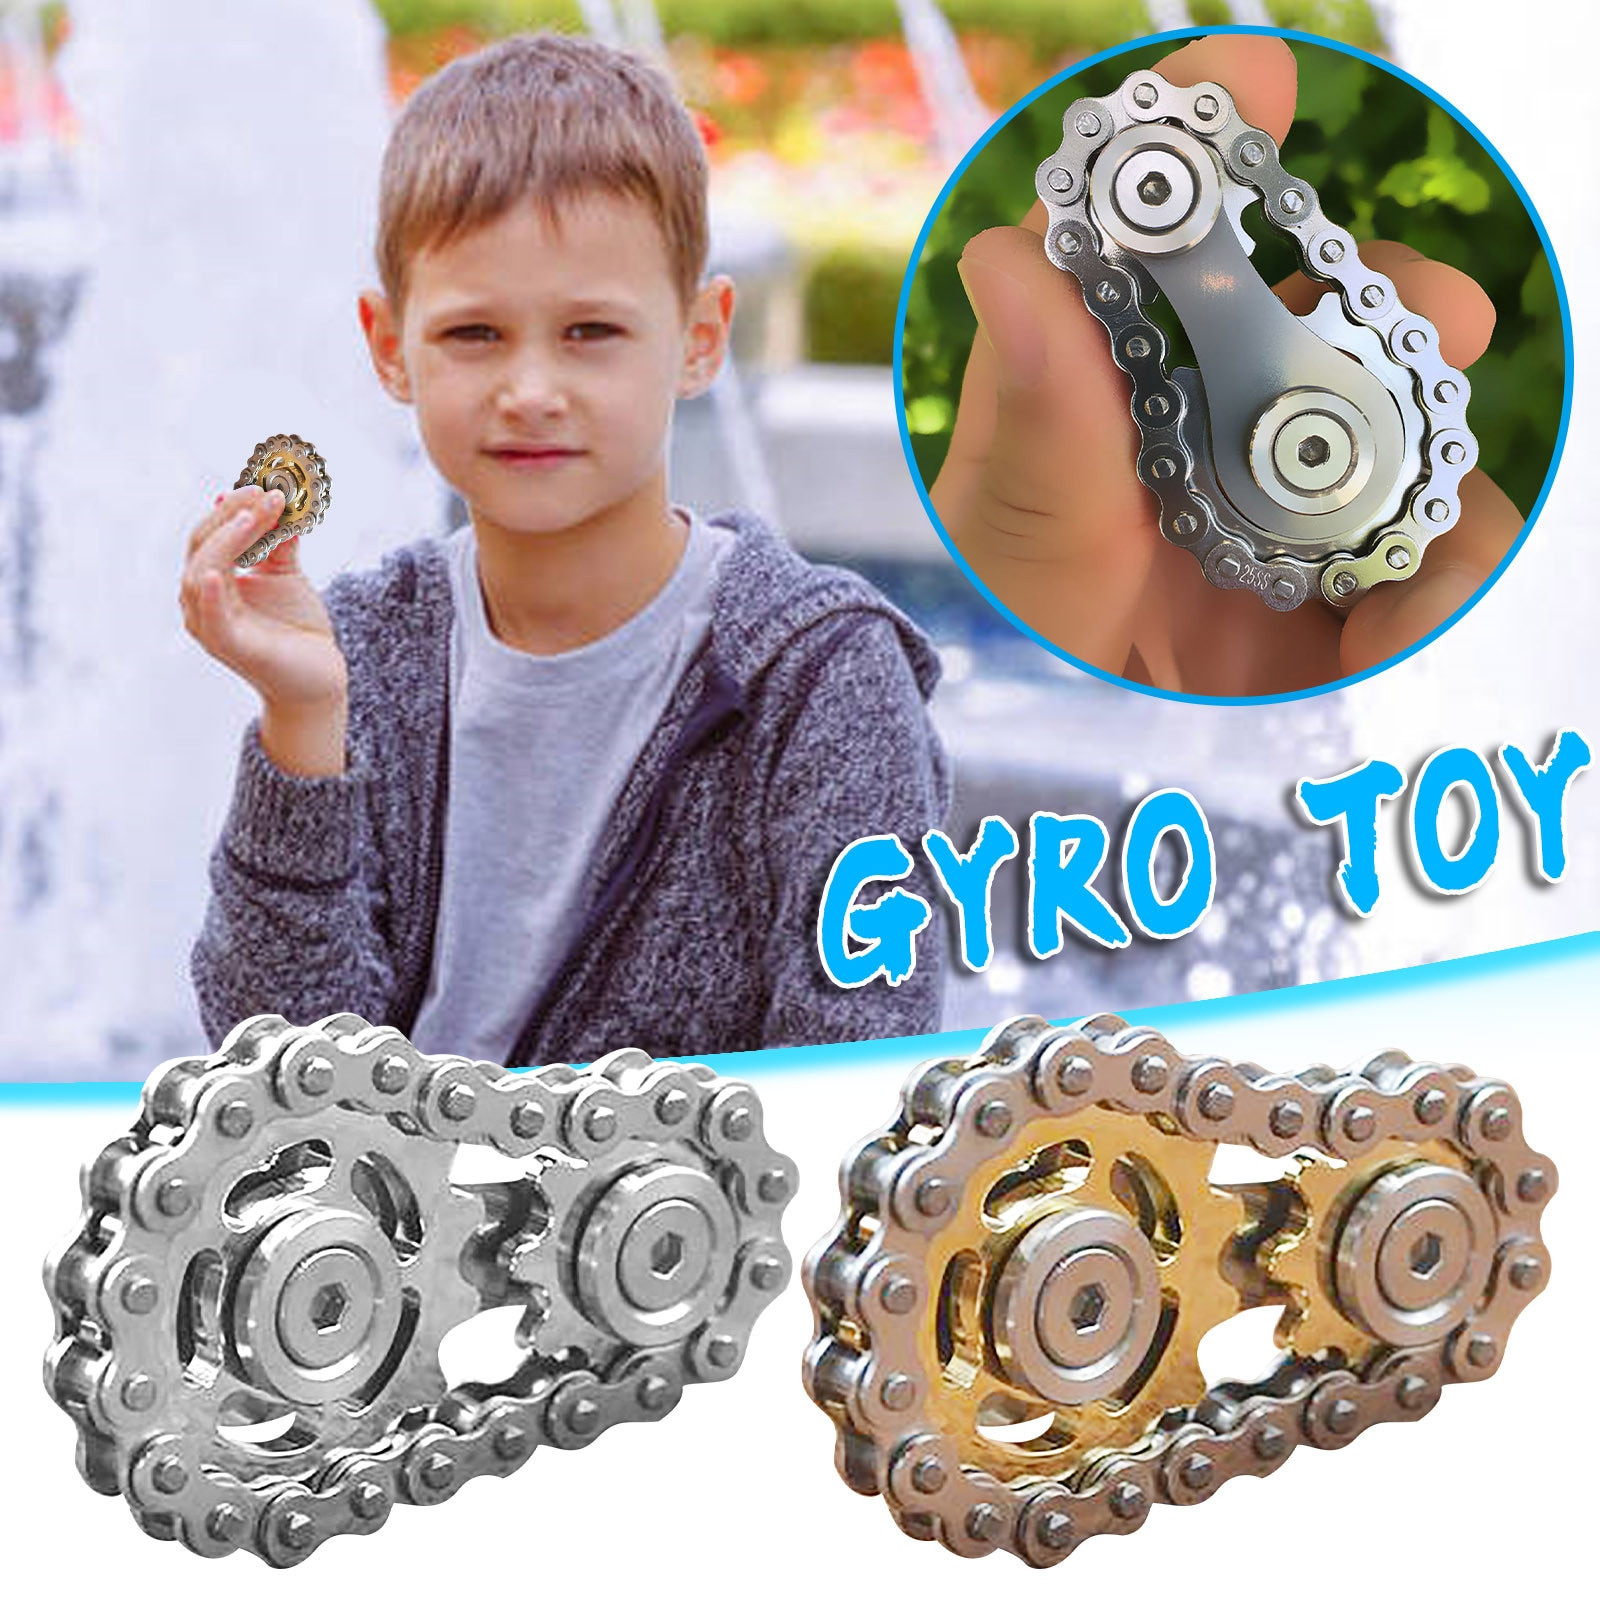 yooap Fingertip gyro sprocket Sprocket Flywheel Fingertip Toy educational decompression toy Gold /Silver color Fingertip Toy enlarge